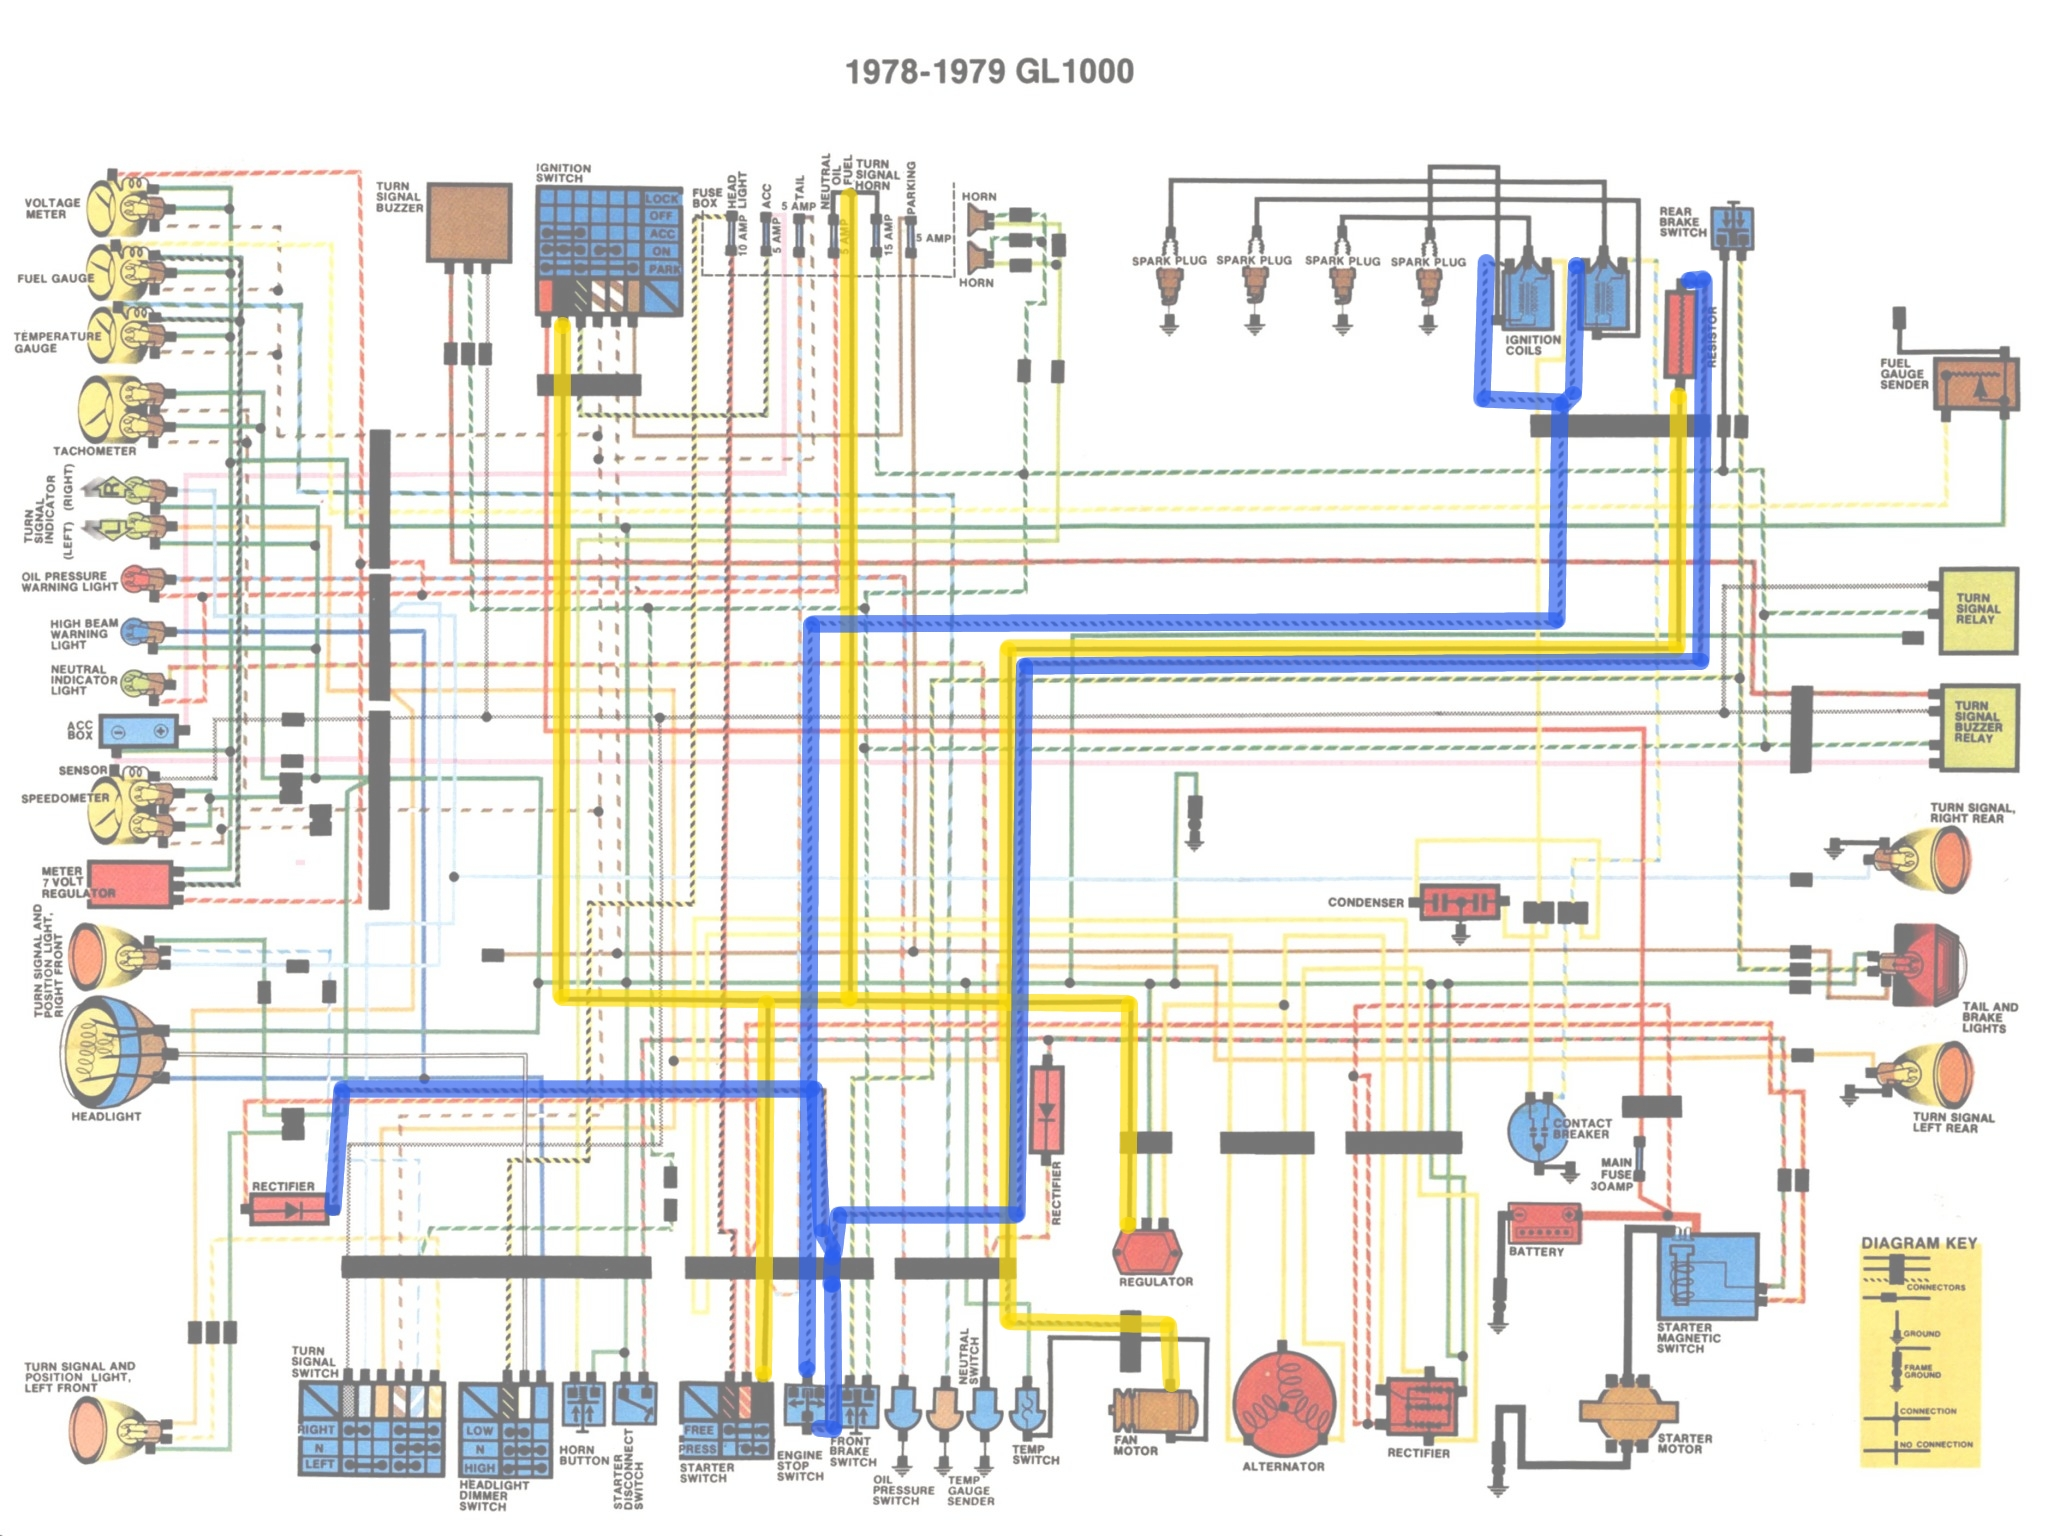 Ktm 950 Supermoto Wiring Diagram Enthusiast Diagrams Exc 990 Smt Electrical House U2022 Rh Universalservices Co 2008